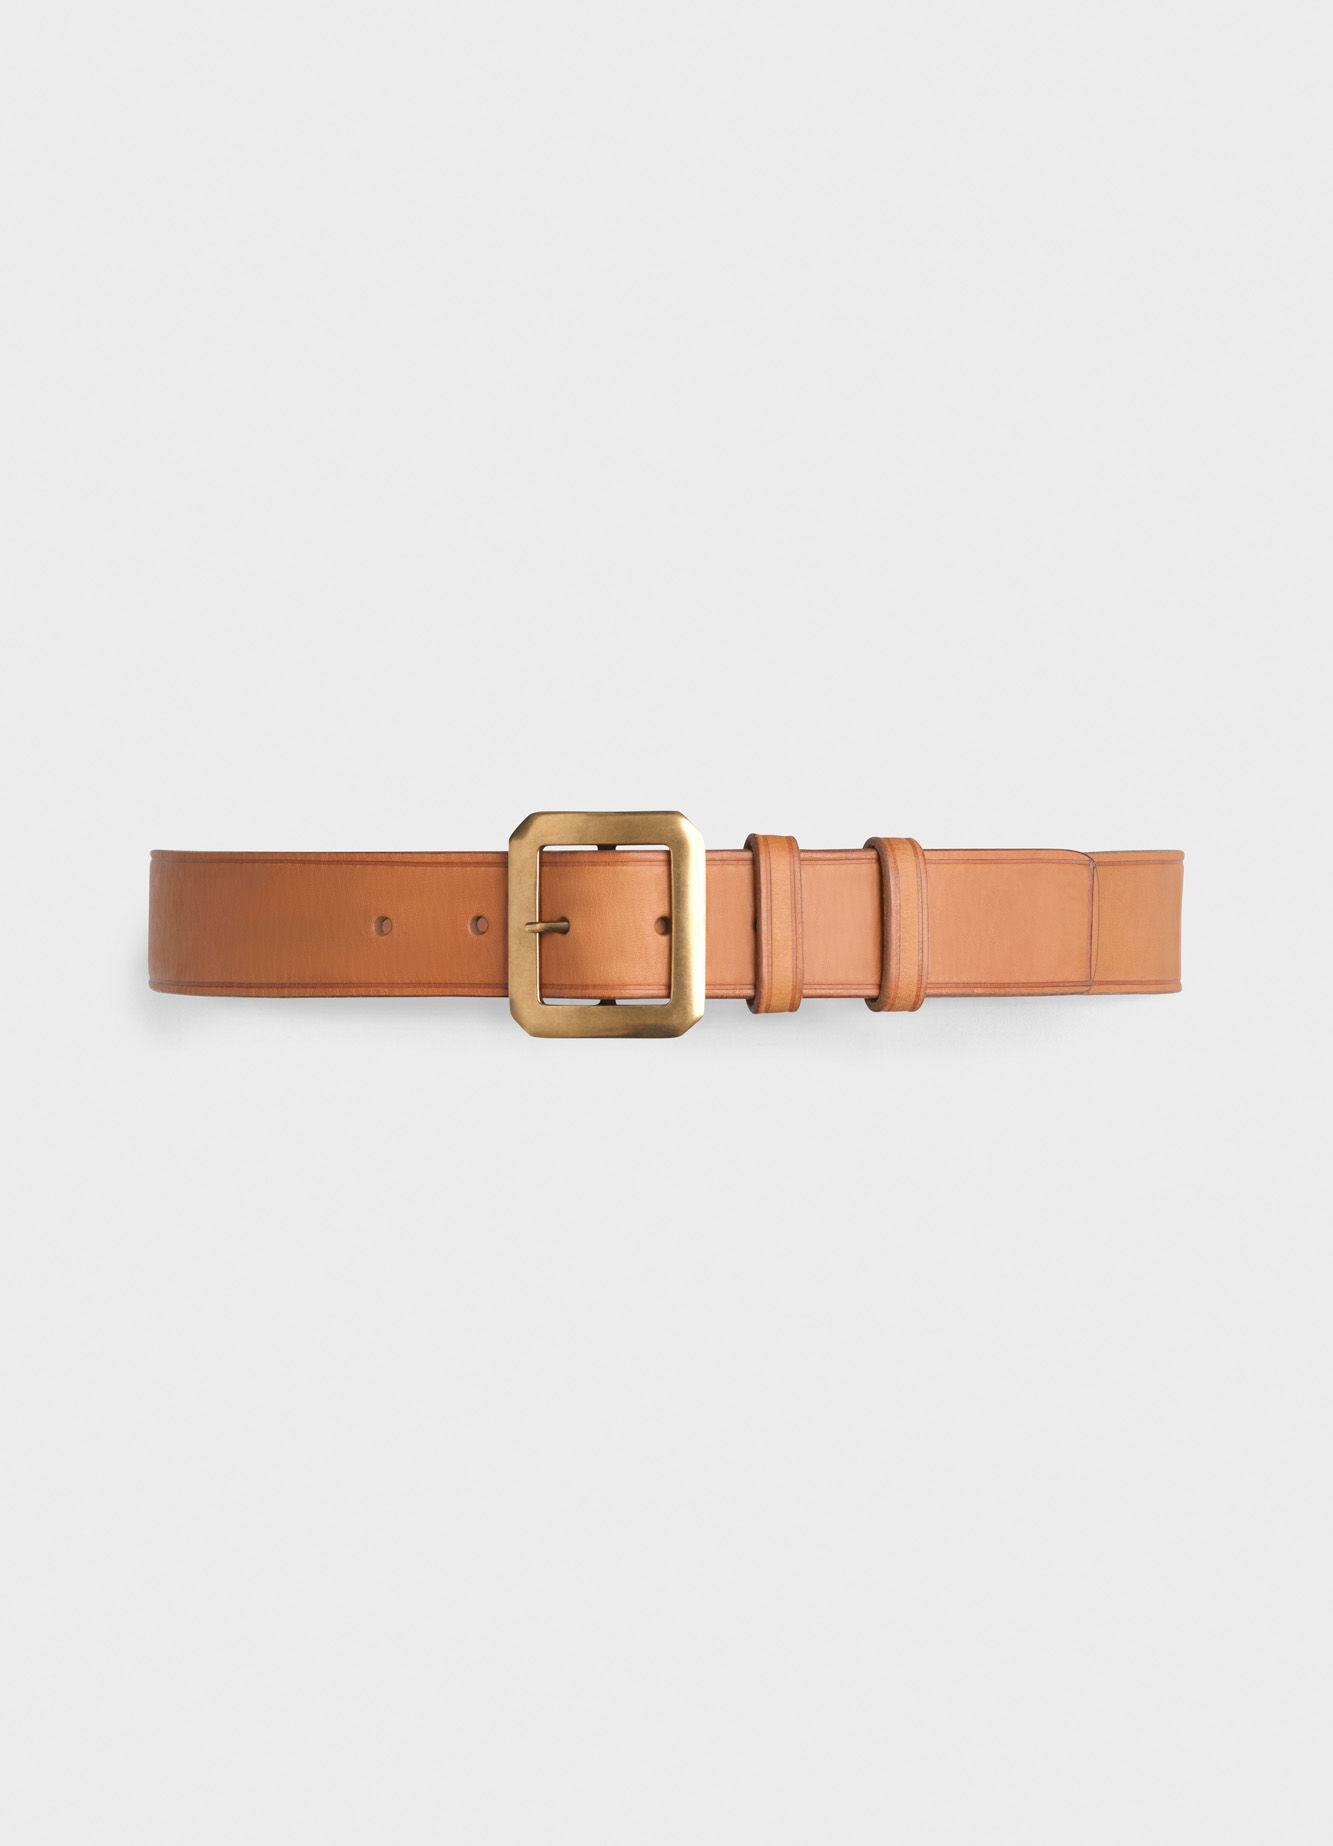 CEINTURON WITH SQUARE BUCKLE IN CALFSKIN   345 USD